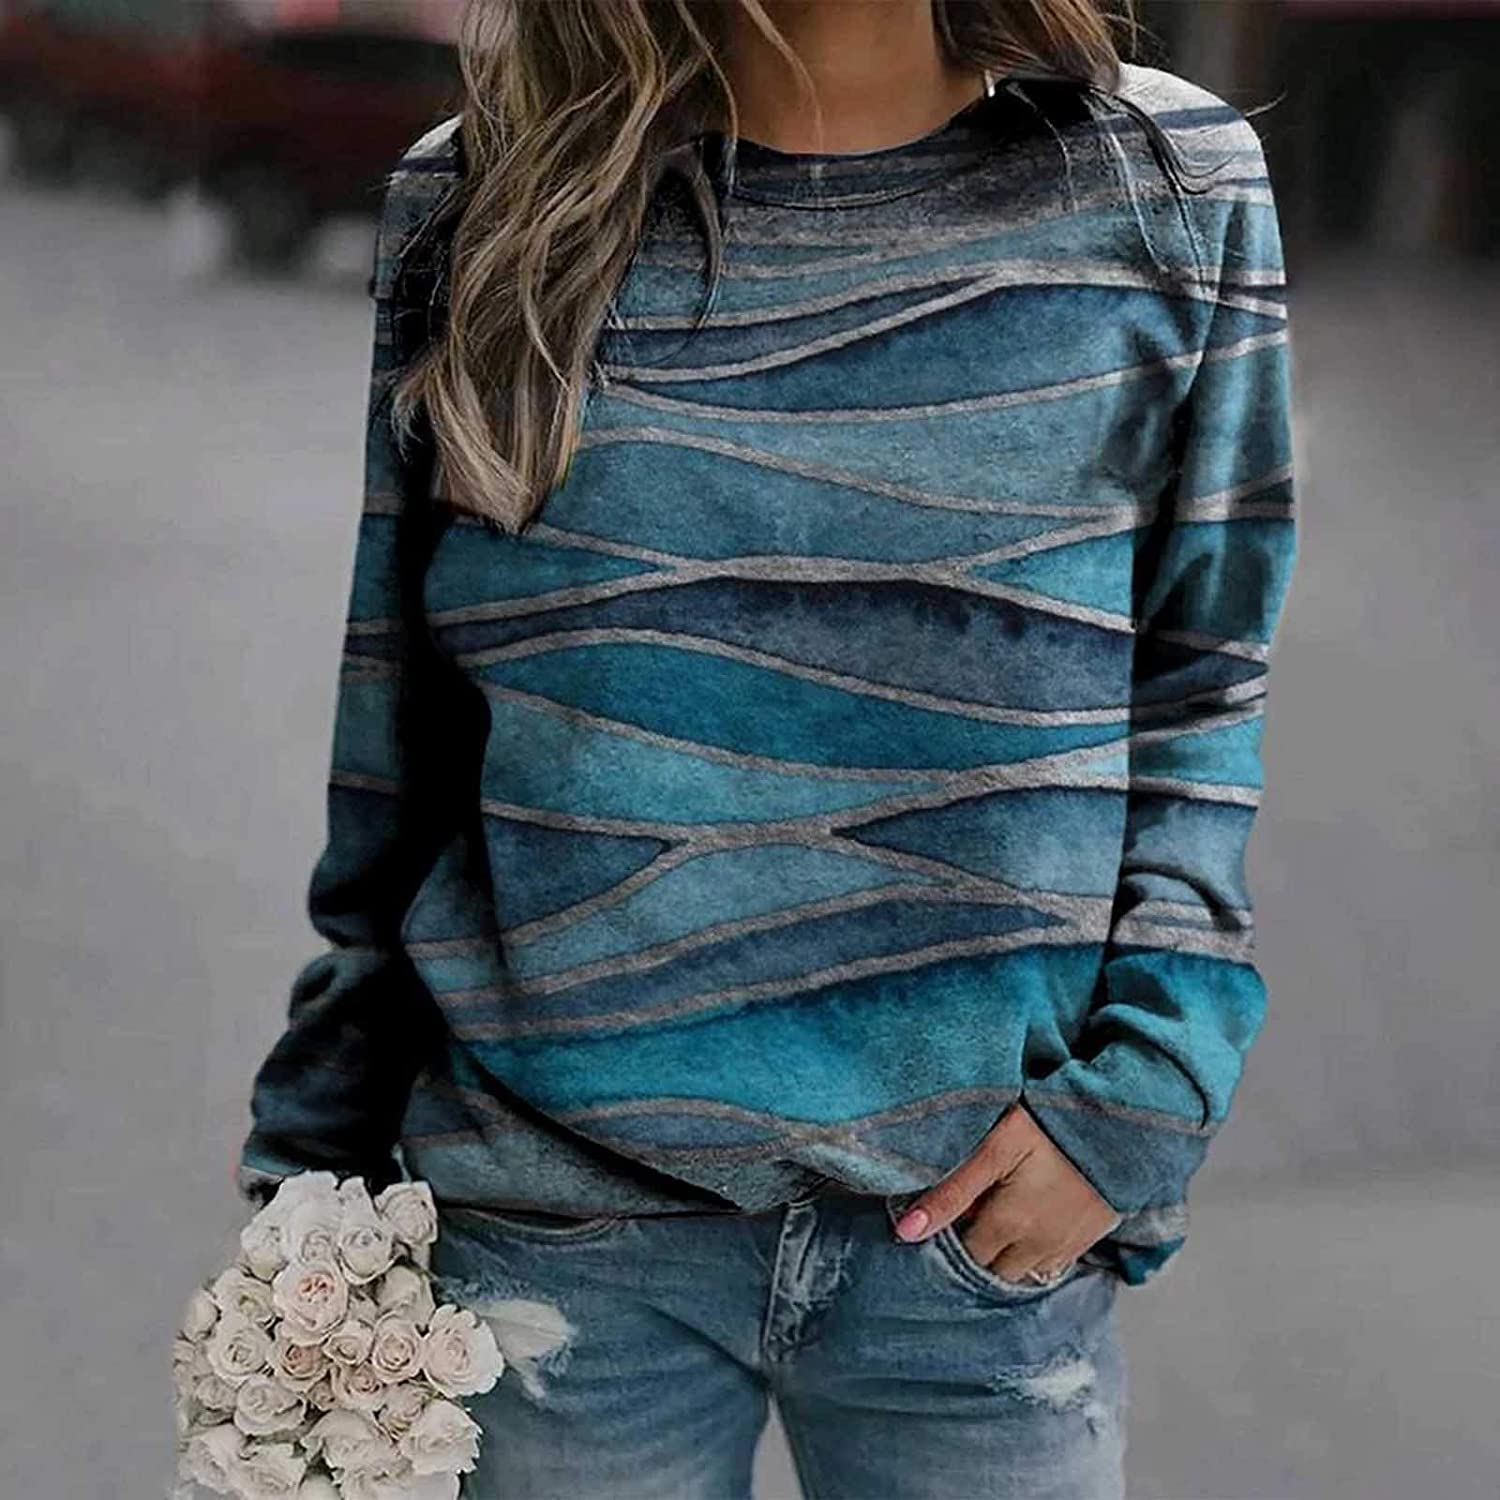 SPOORYYO Sweatshirts for Womens, Women's Casual Shirts Long Sleeve Tops Graphic Crew Neck Loose Soft Fall Blouses Tunics